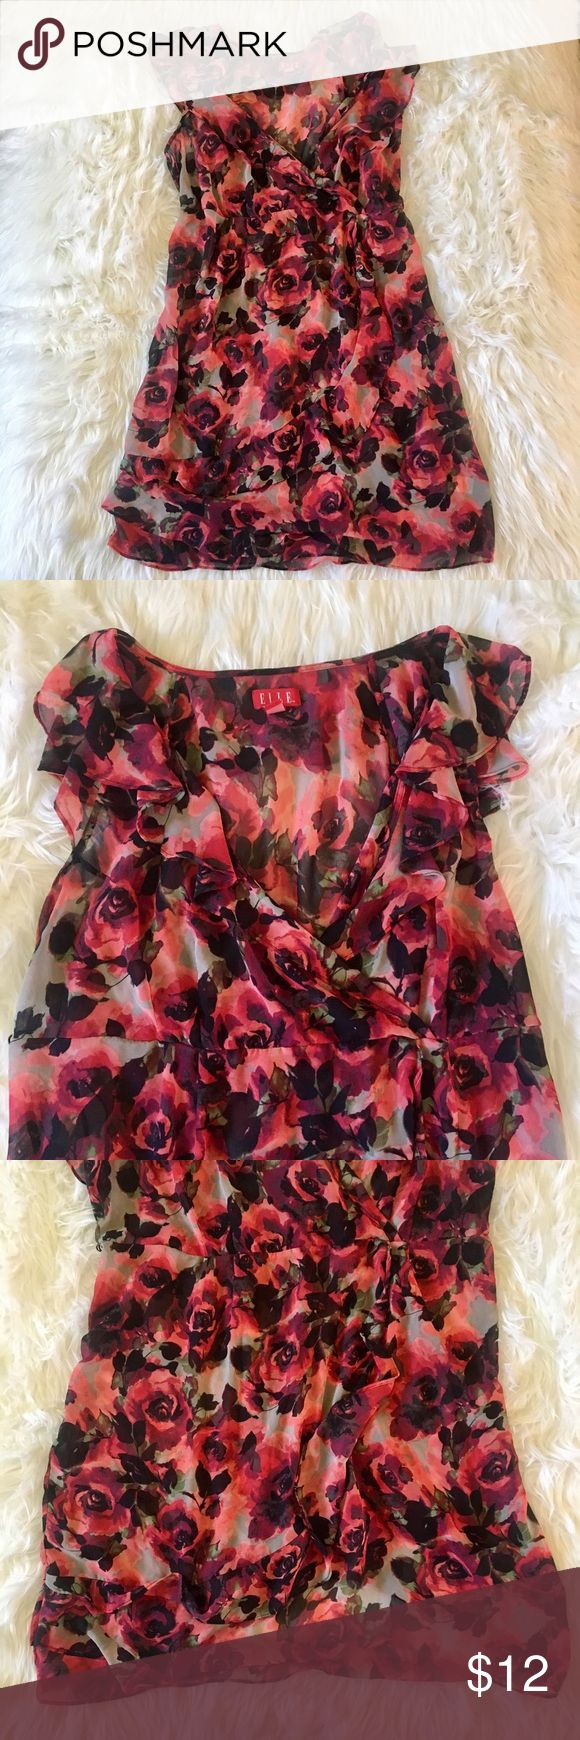 PLUS SIZE ROSE FLORAL SUMMER DRESS LIKE TORRID 💠FLOWY AND SEMI SHEER RED ROSE FLORAL DRESS. 💠HAS A V NECK LINE AND ZIPPER SIDE. 💠BOTTOM PART OF THE DRESS COMES AND DRAPES OVER! 💠REALLY CUTE FOR THIS SUMMER WITH SOME SANDALS AND CURLY HAIR! 💠BRAND IS LIKE TORRID. LABEL IS ELLE IN A 3X 💠FIND LISTING ON MERCARI FOR CHEAPER RATE! torrid Dresses Midi